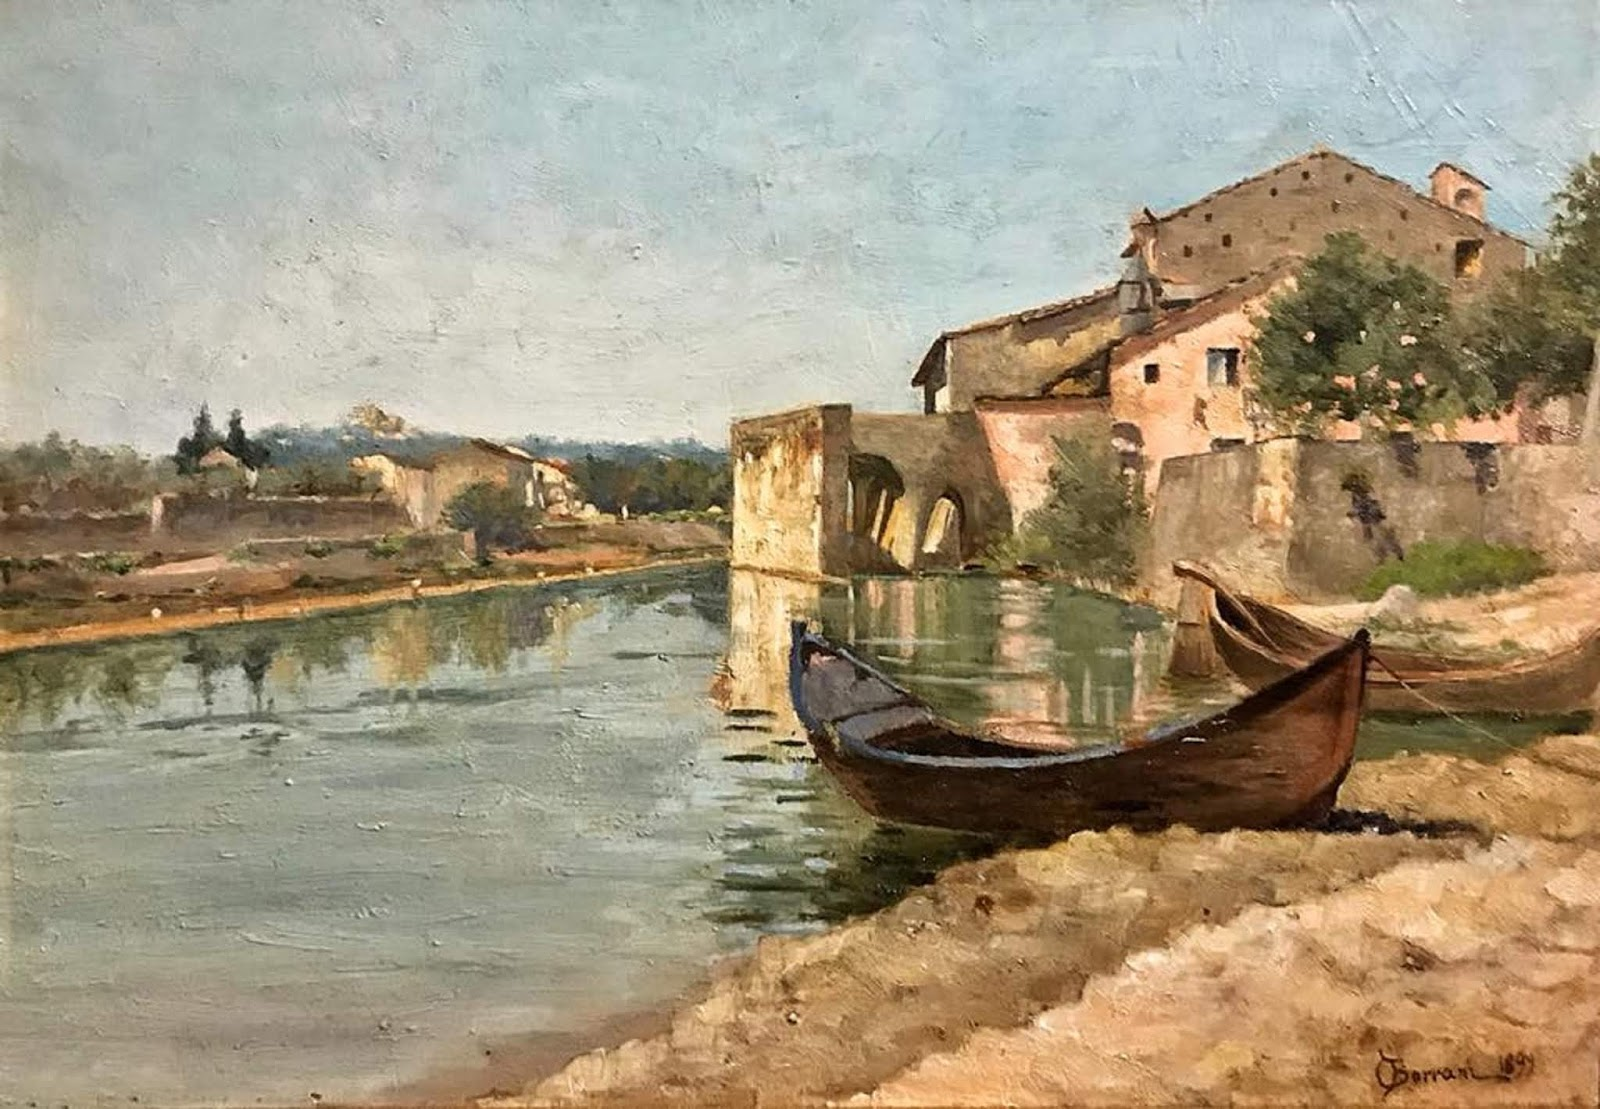 Paintings by Odoardo Borrani (1833-1905)